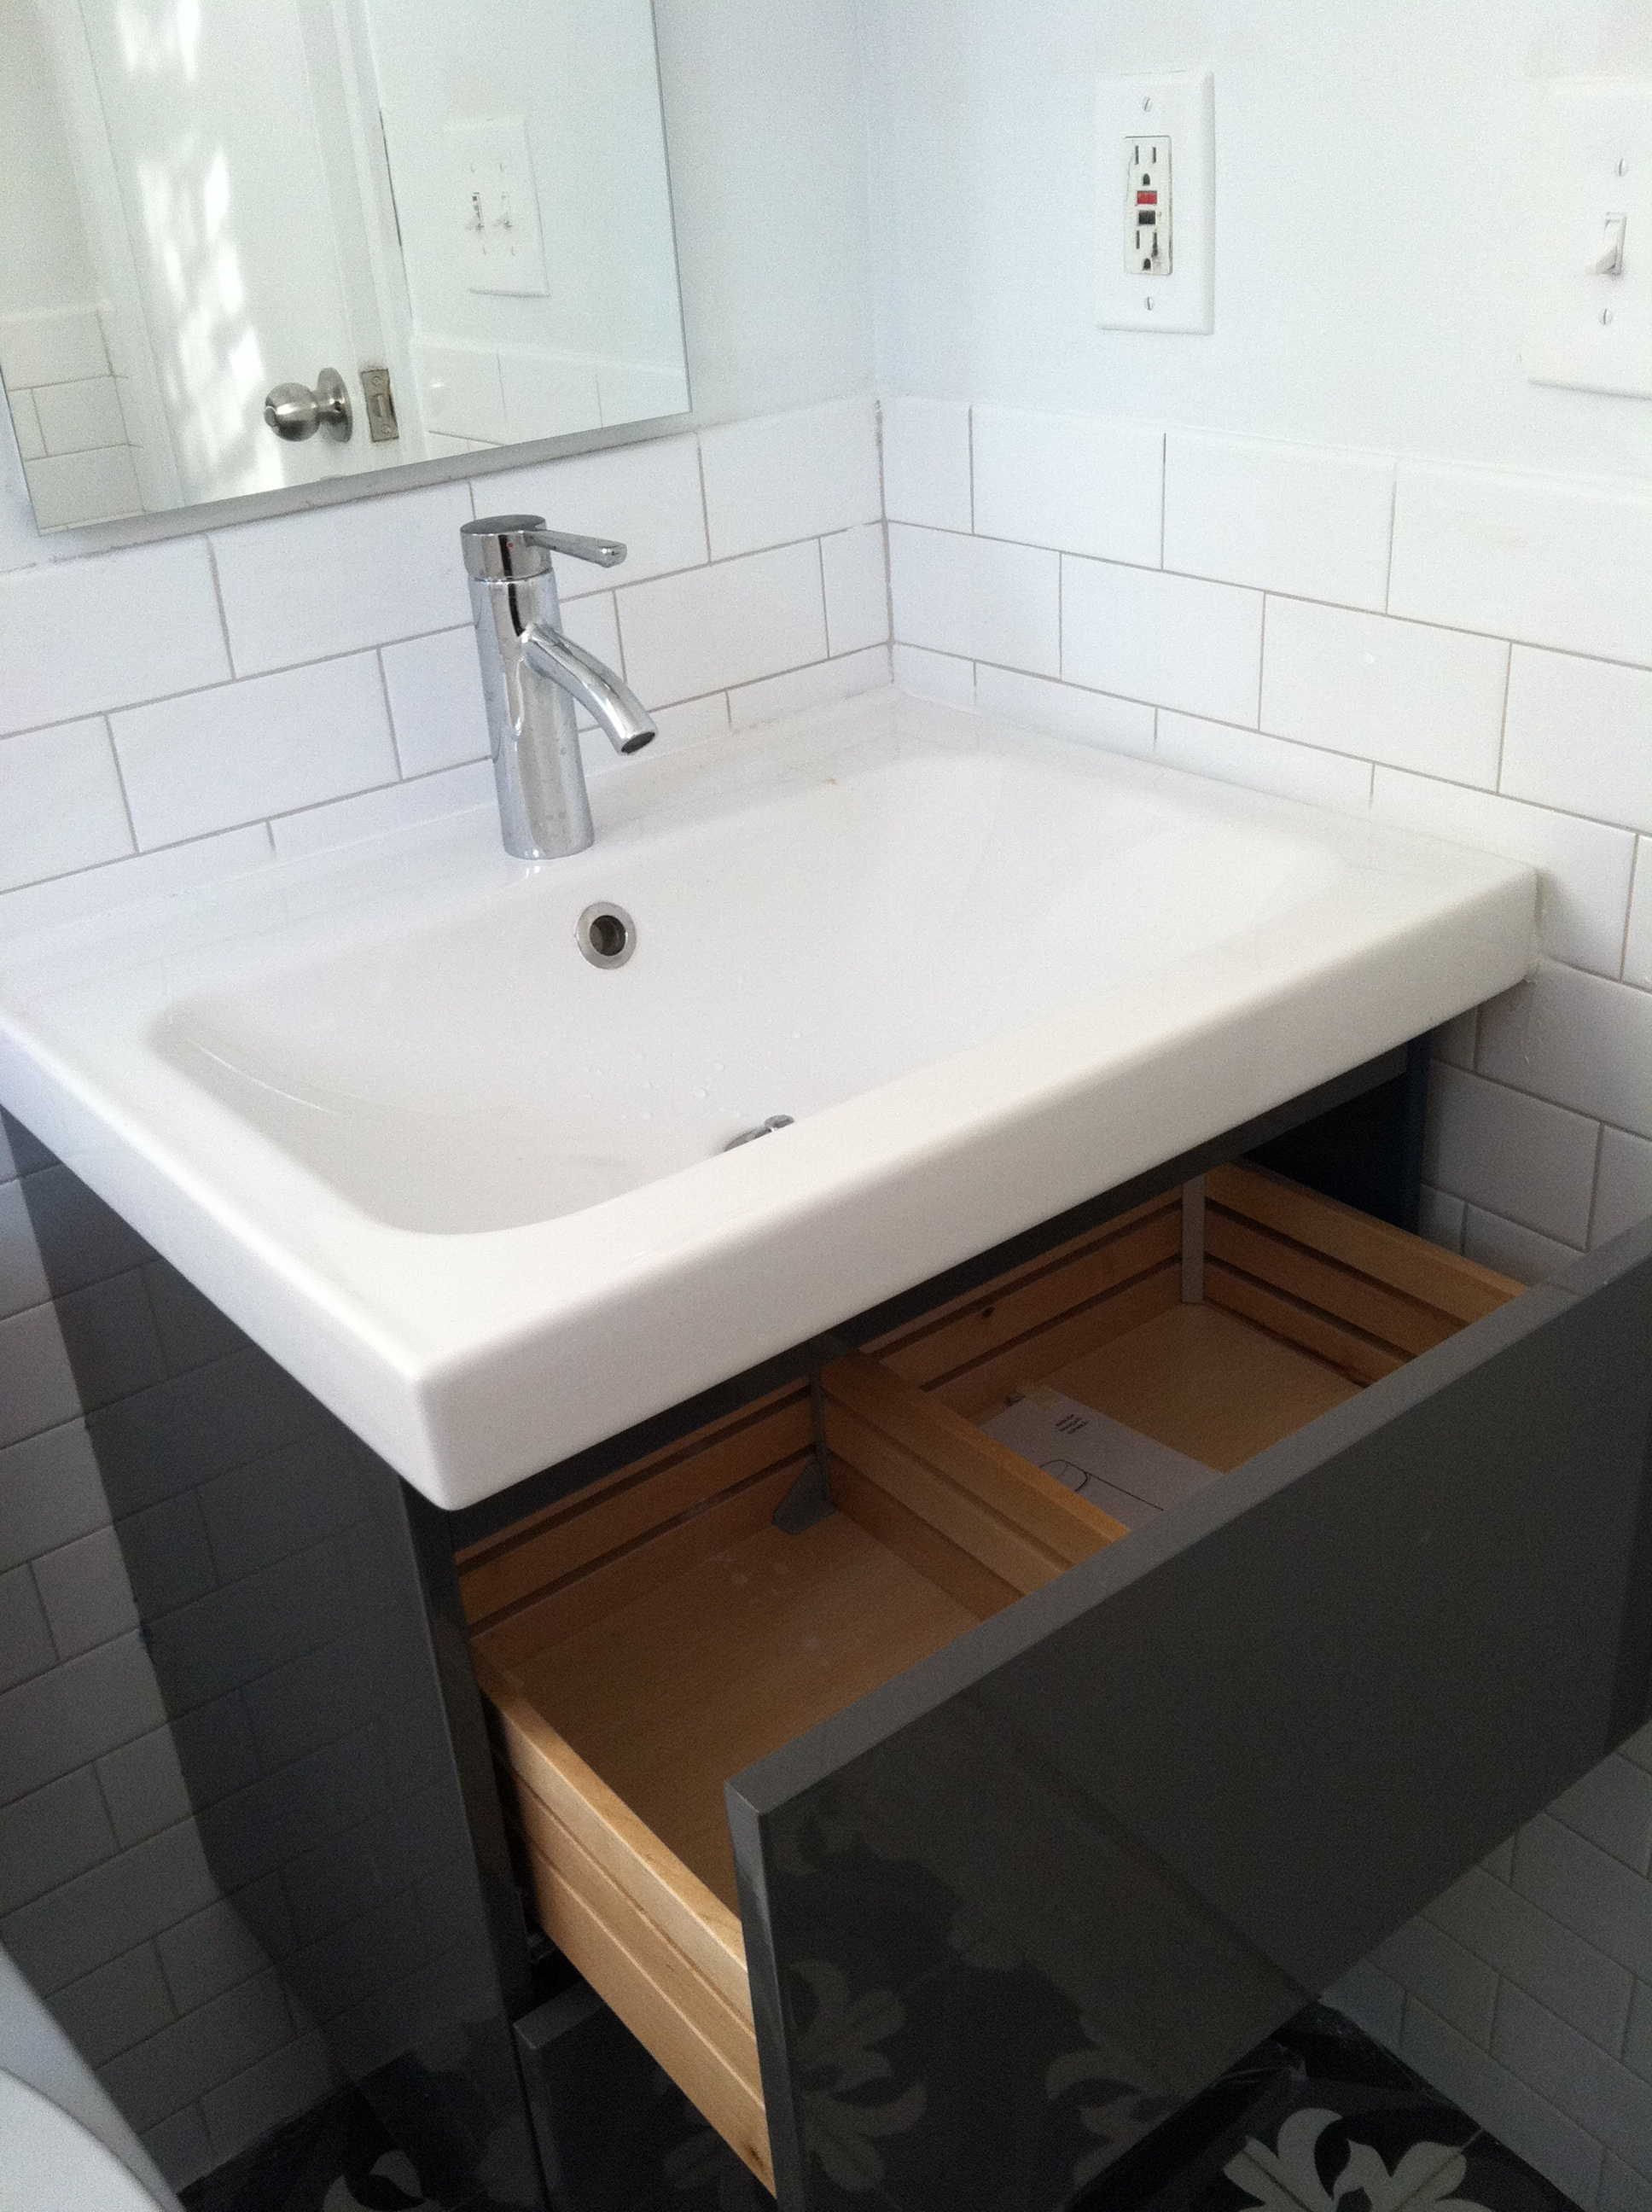 Ikea Bathroom Sink : ikea bathroom vanity Loisaida Nest